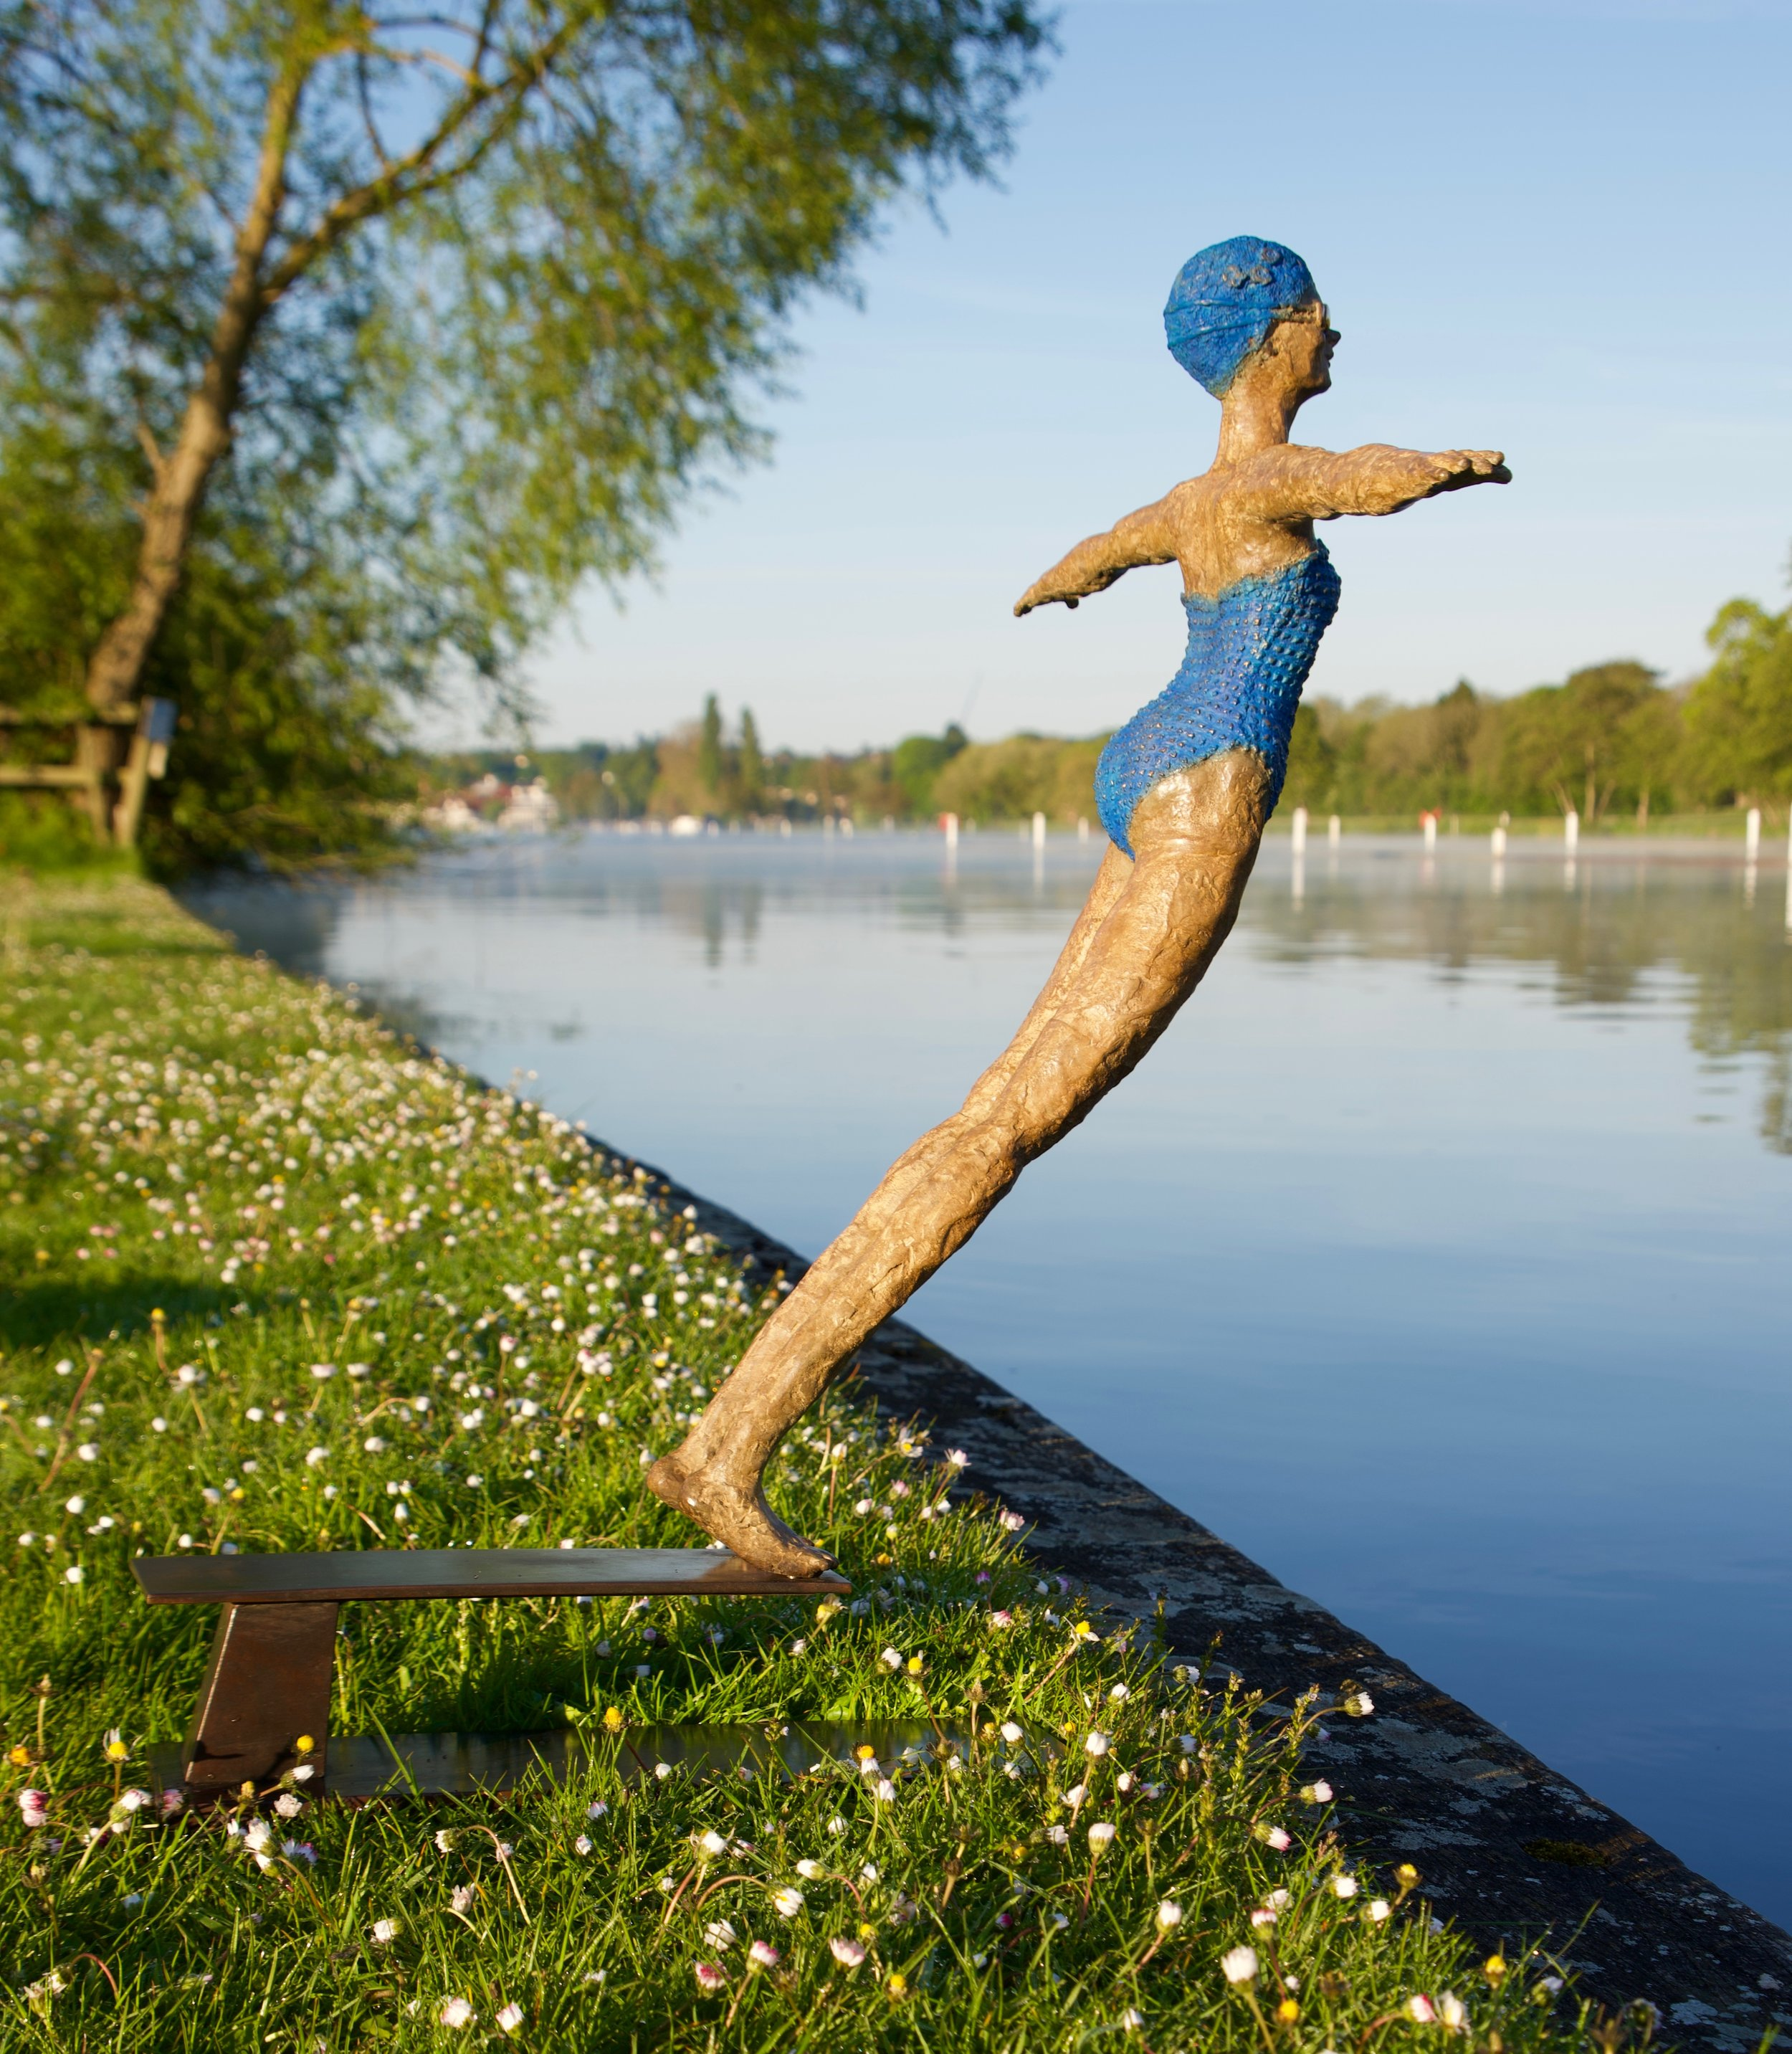 'Diving into life' on the river Thames (2018)